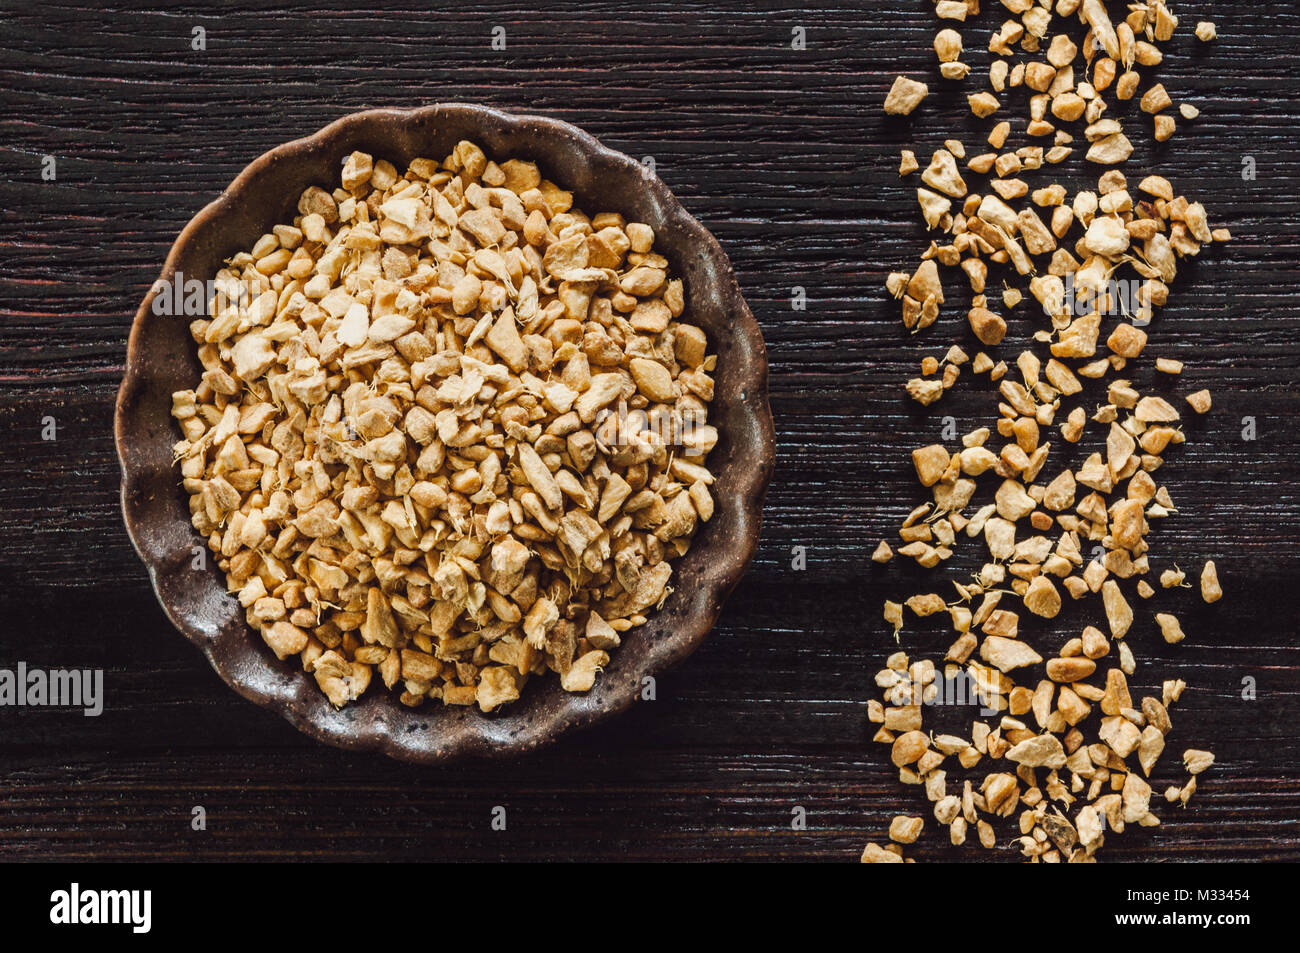 Ceramic Bowl of Dried Ginger with Arranged Granules on Dark Wooden Table - Stock Image